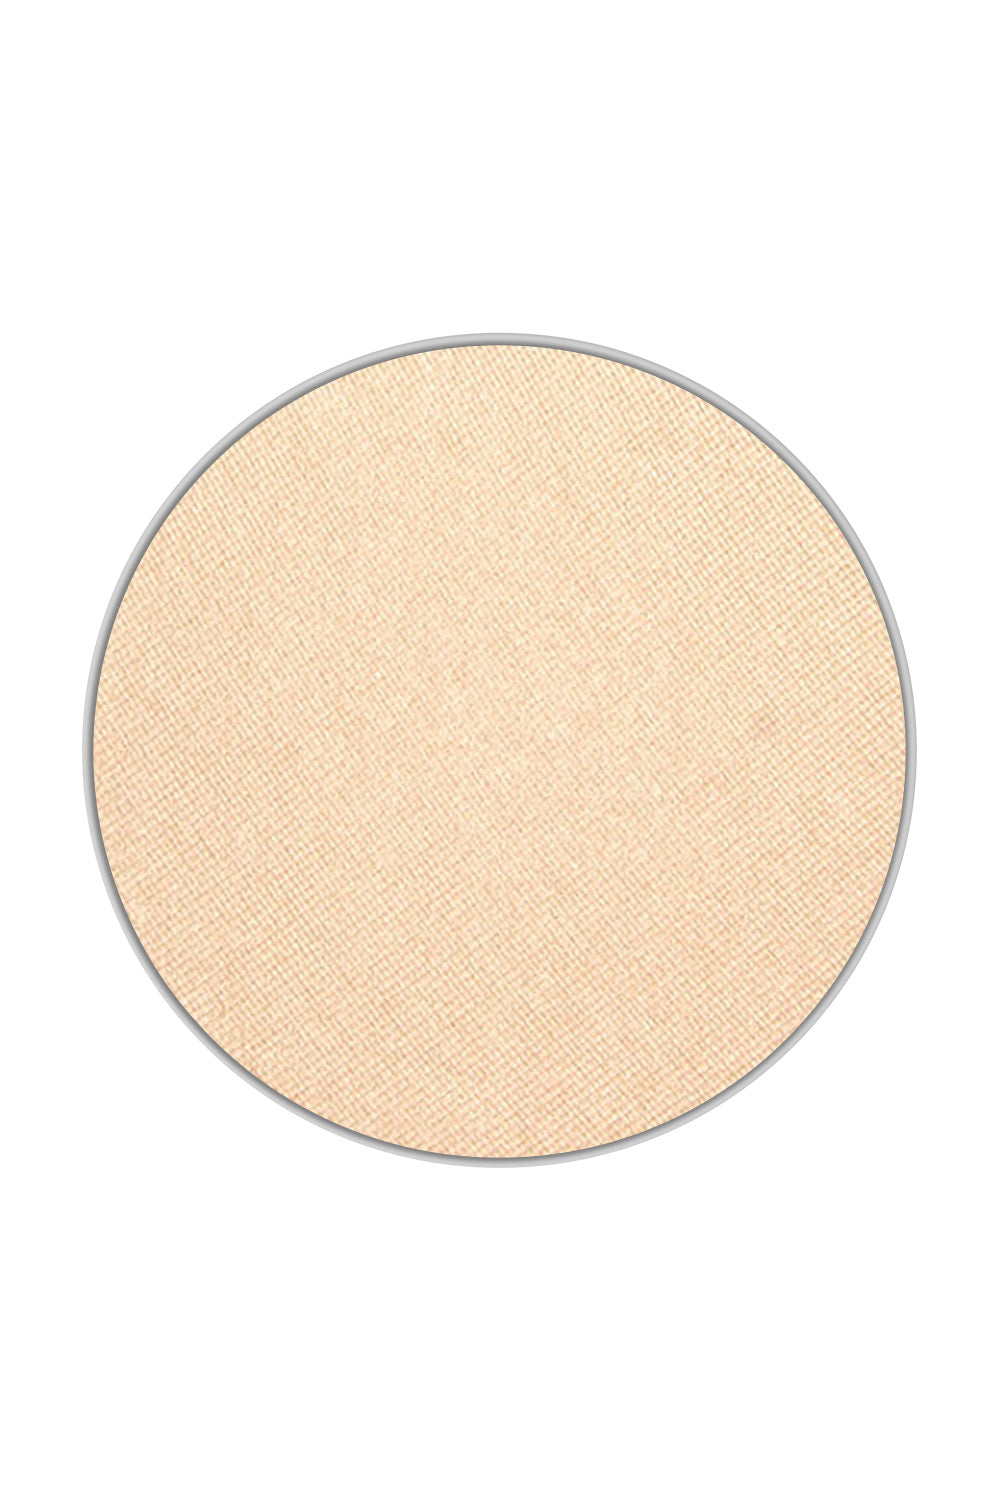 Type 1 Highlighter Pan - Golden Glow